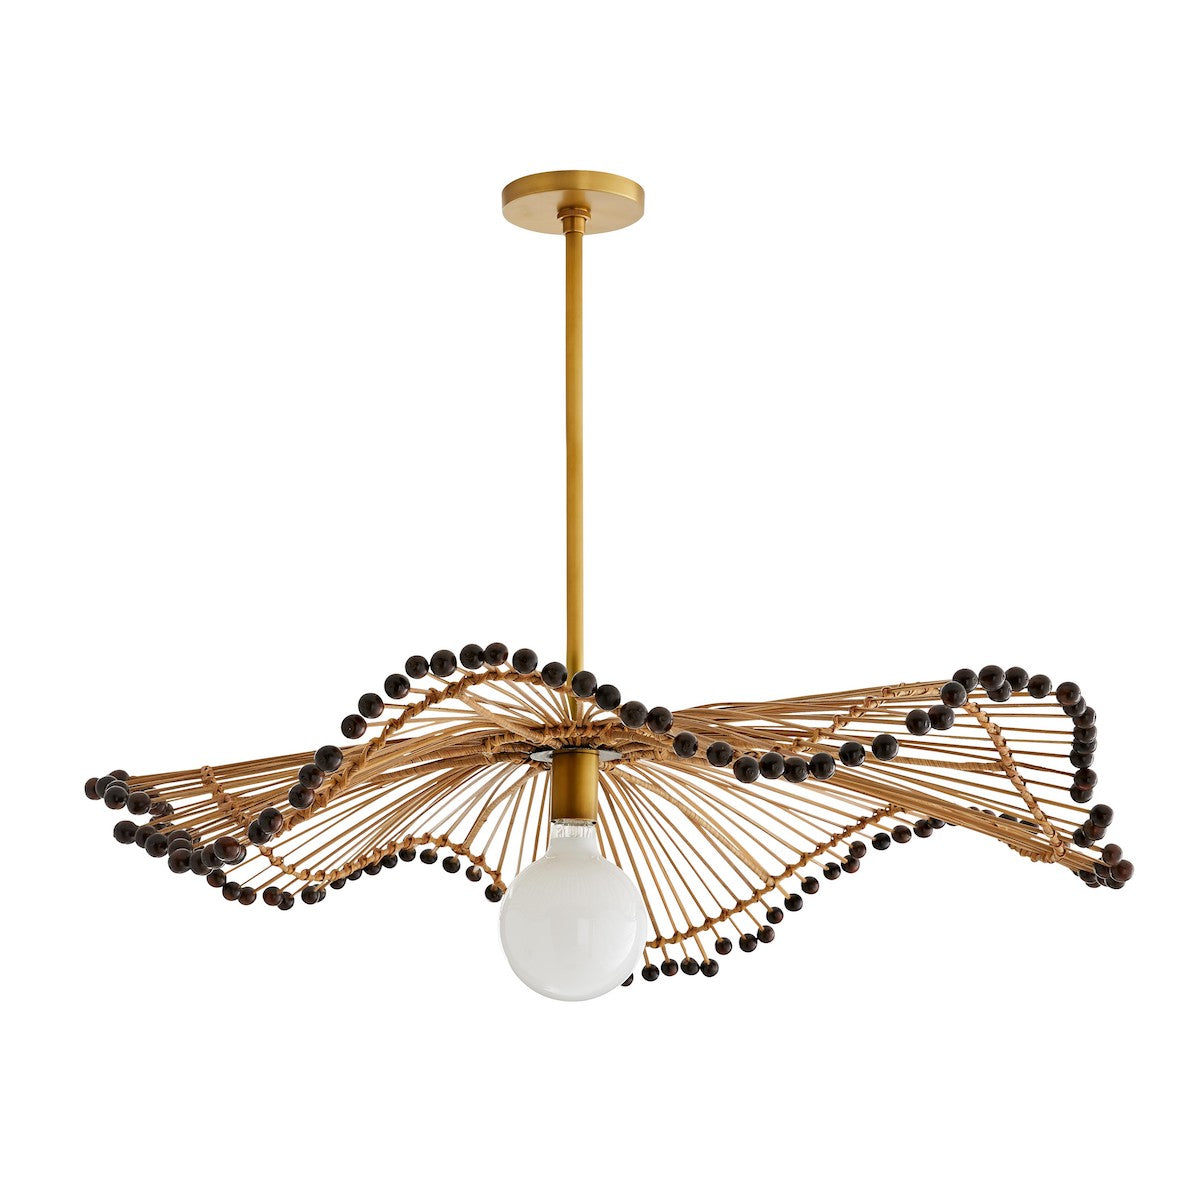 Furbish Studio - Veva Rattan and Buri Sticks Chandelier